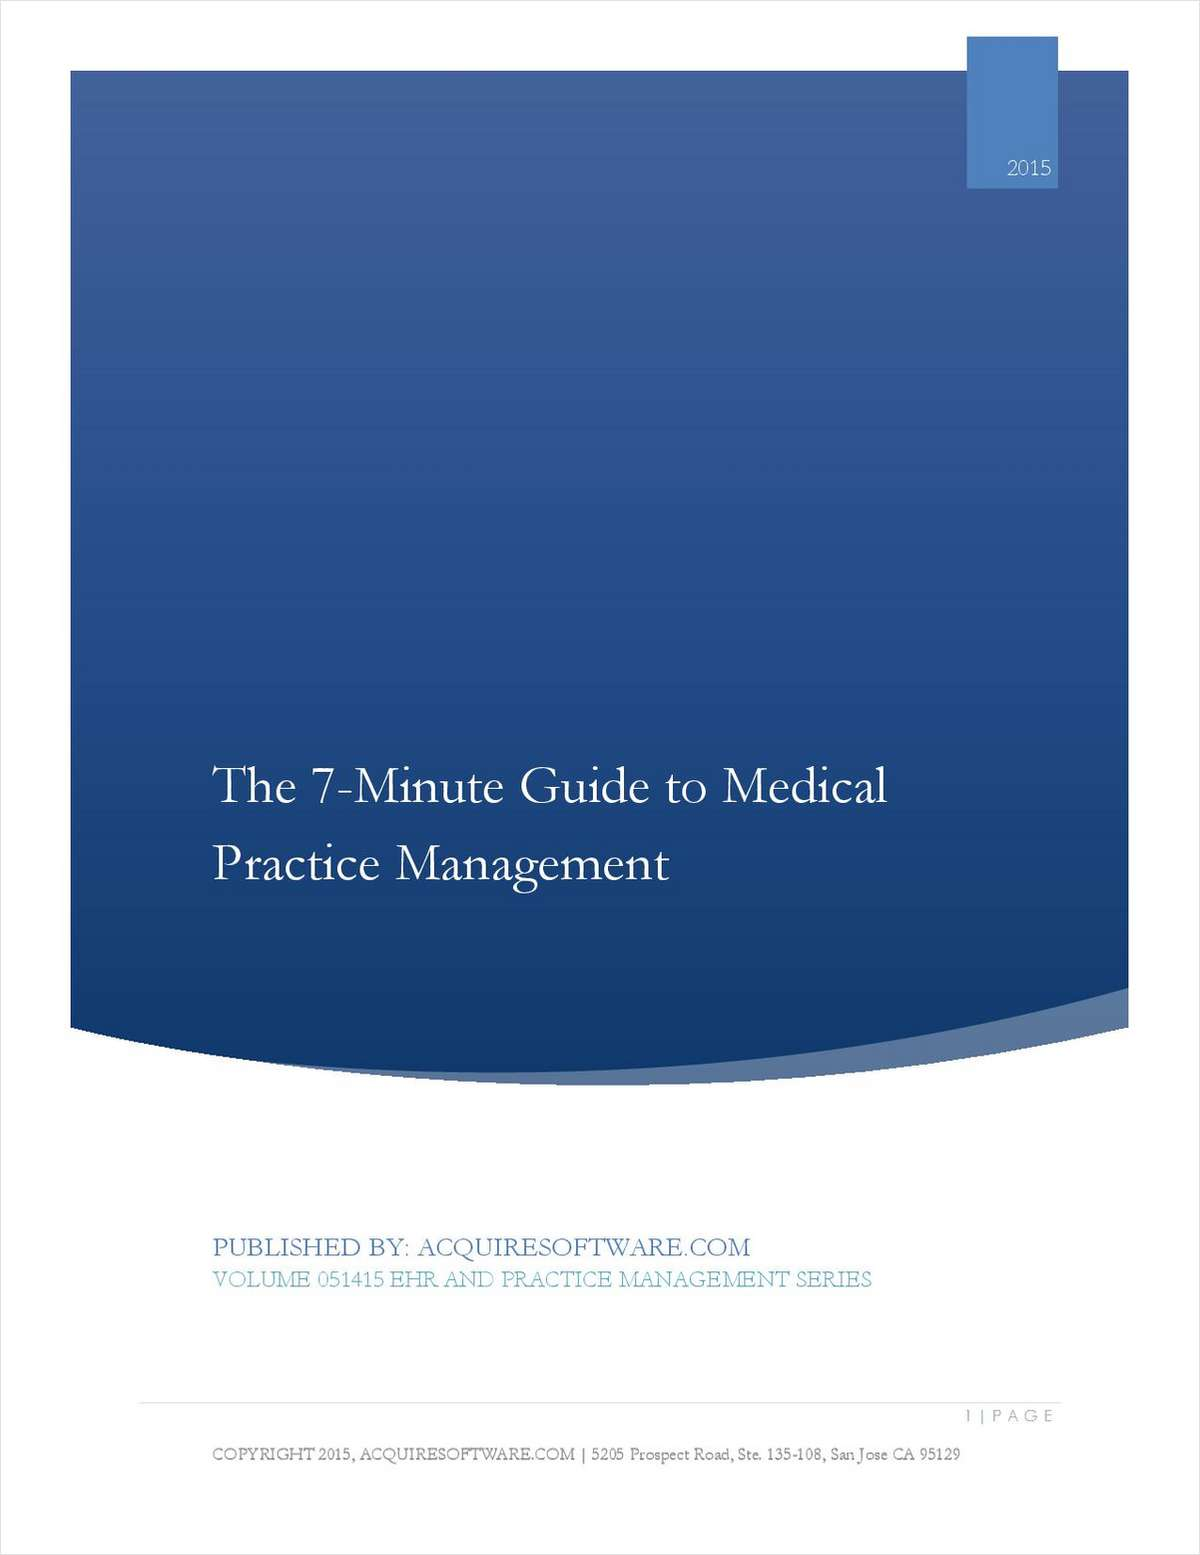 7-Minute Buyer's Guide: Selecting the Right Practice Management, Medical Billing, and Patient Management Technologies for Streamlined Operations